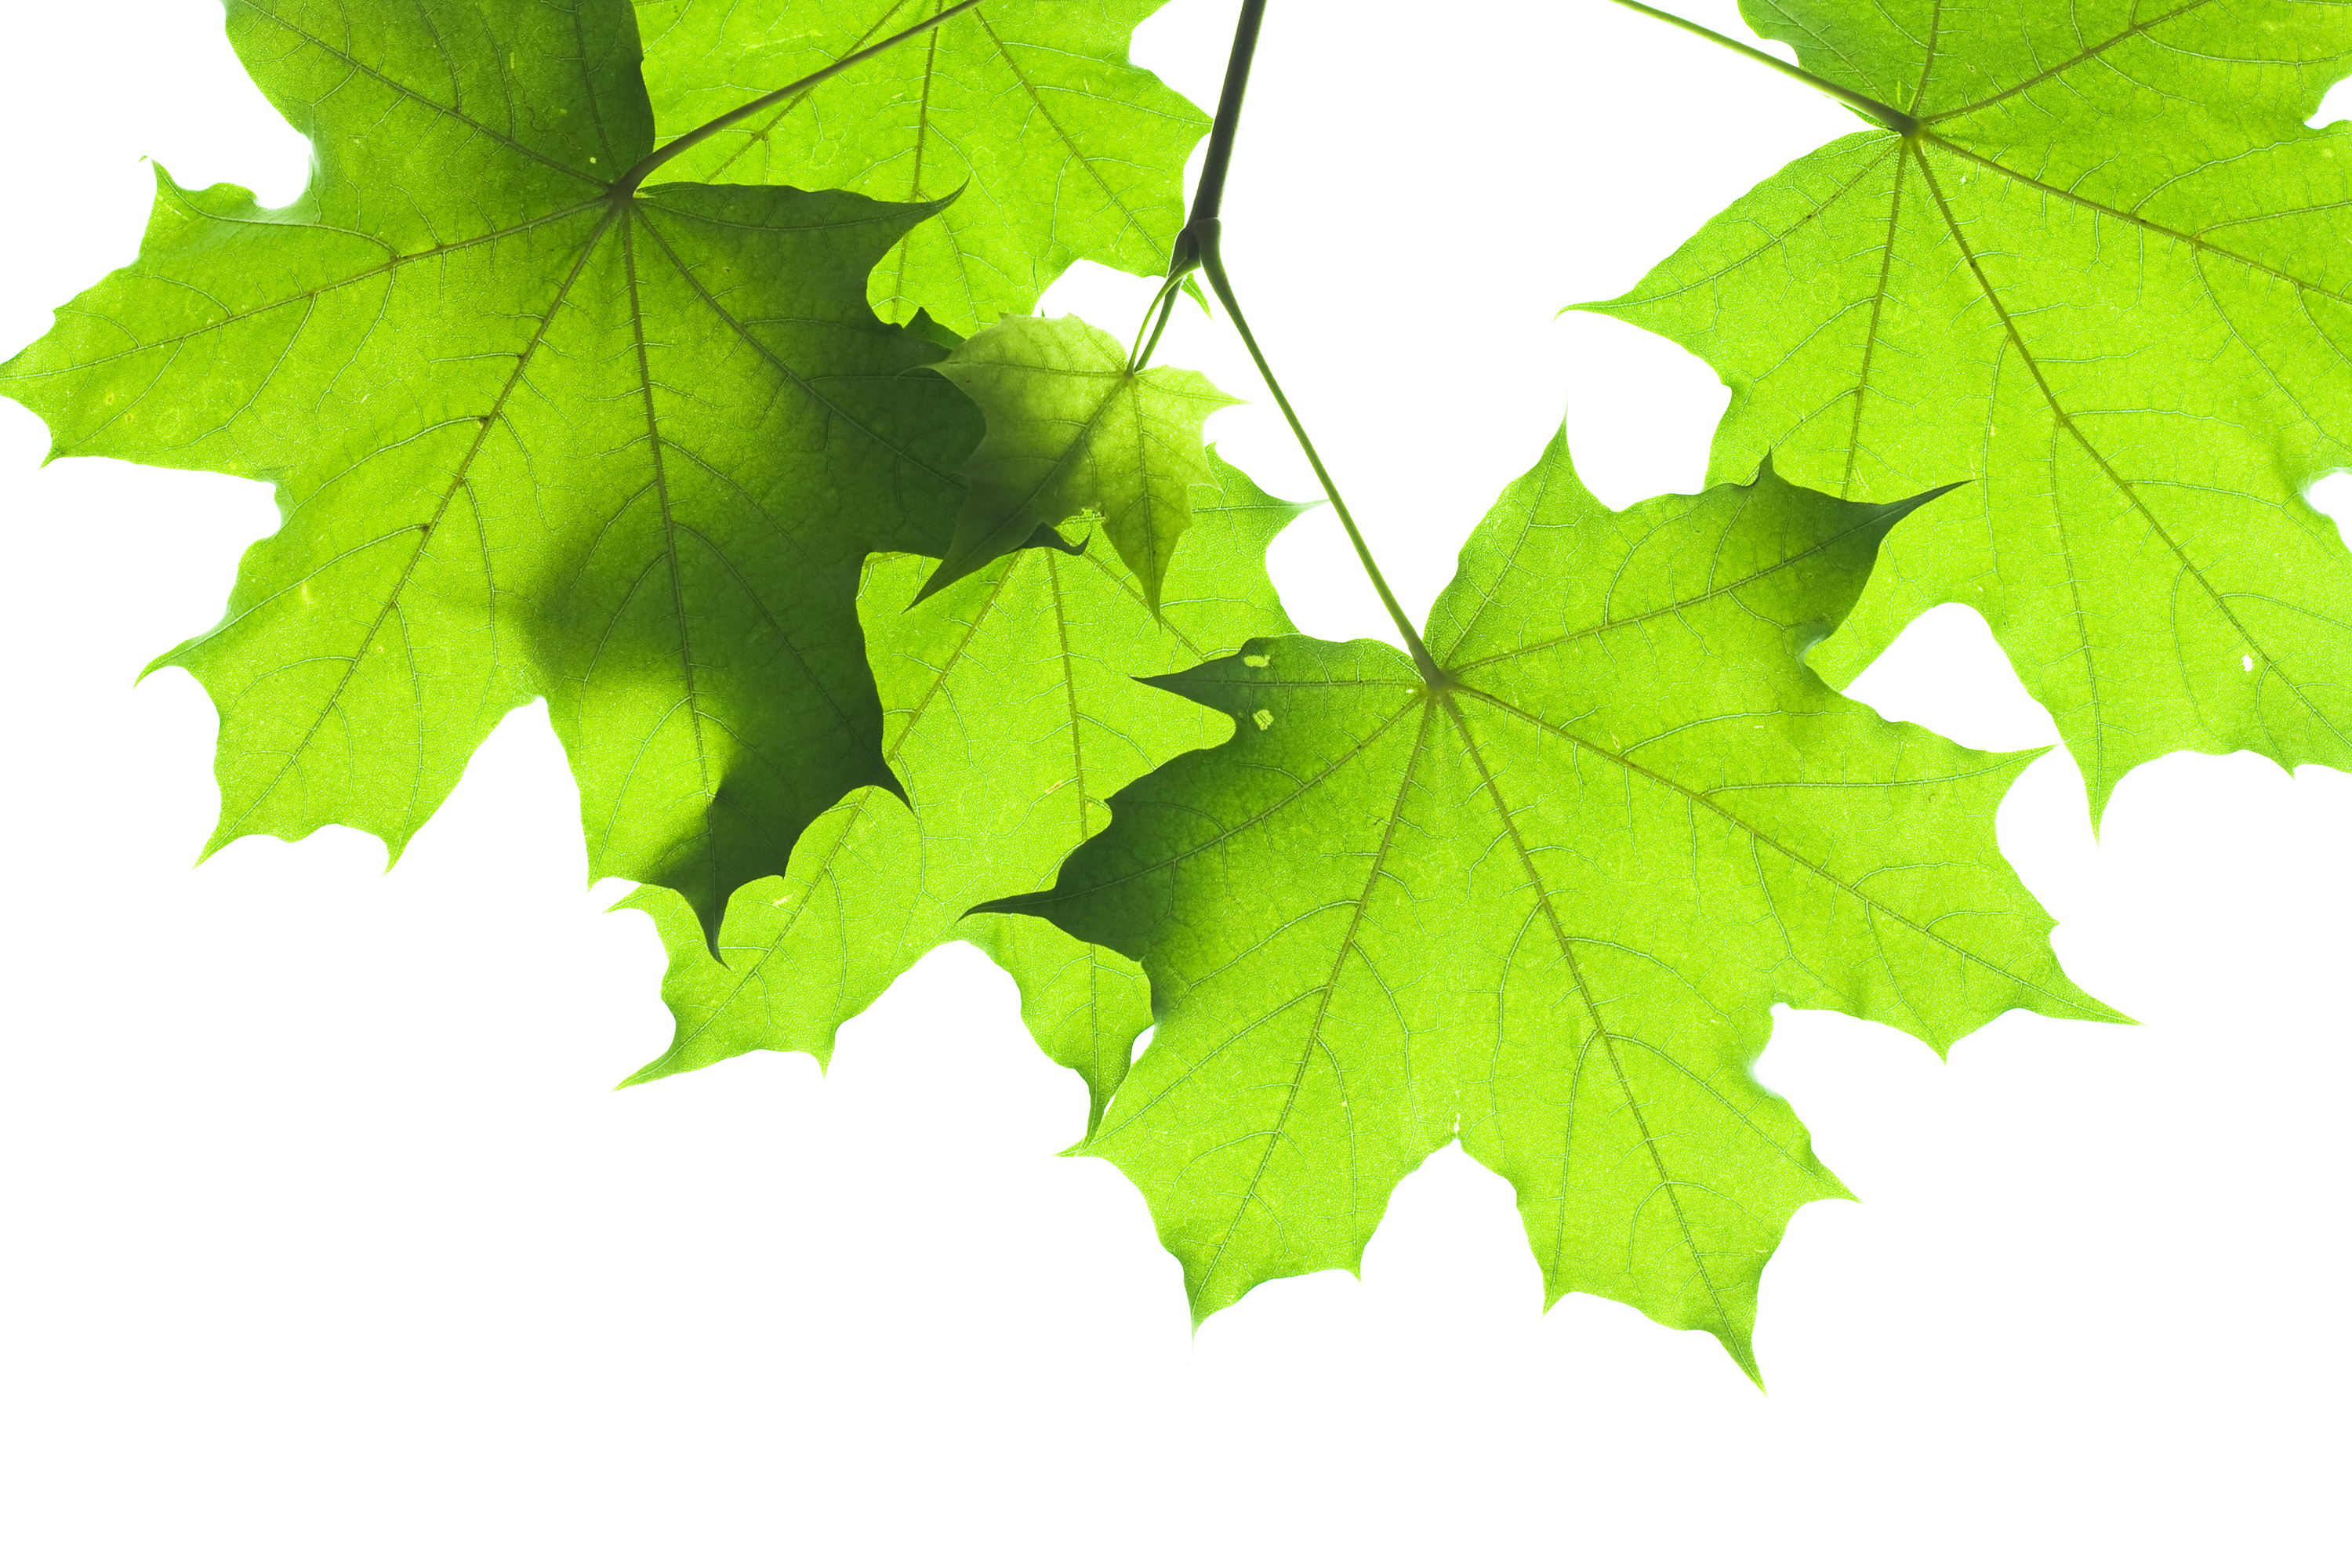 Leaves isolated, Plant, Ornate, Object, Nature, HQ Photo